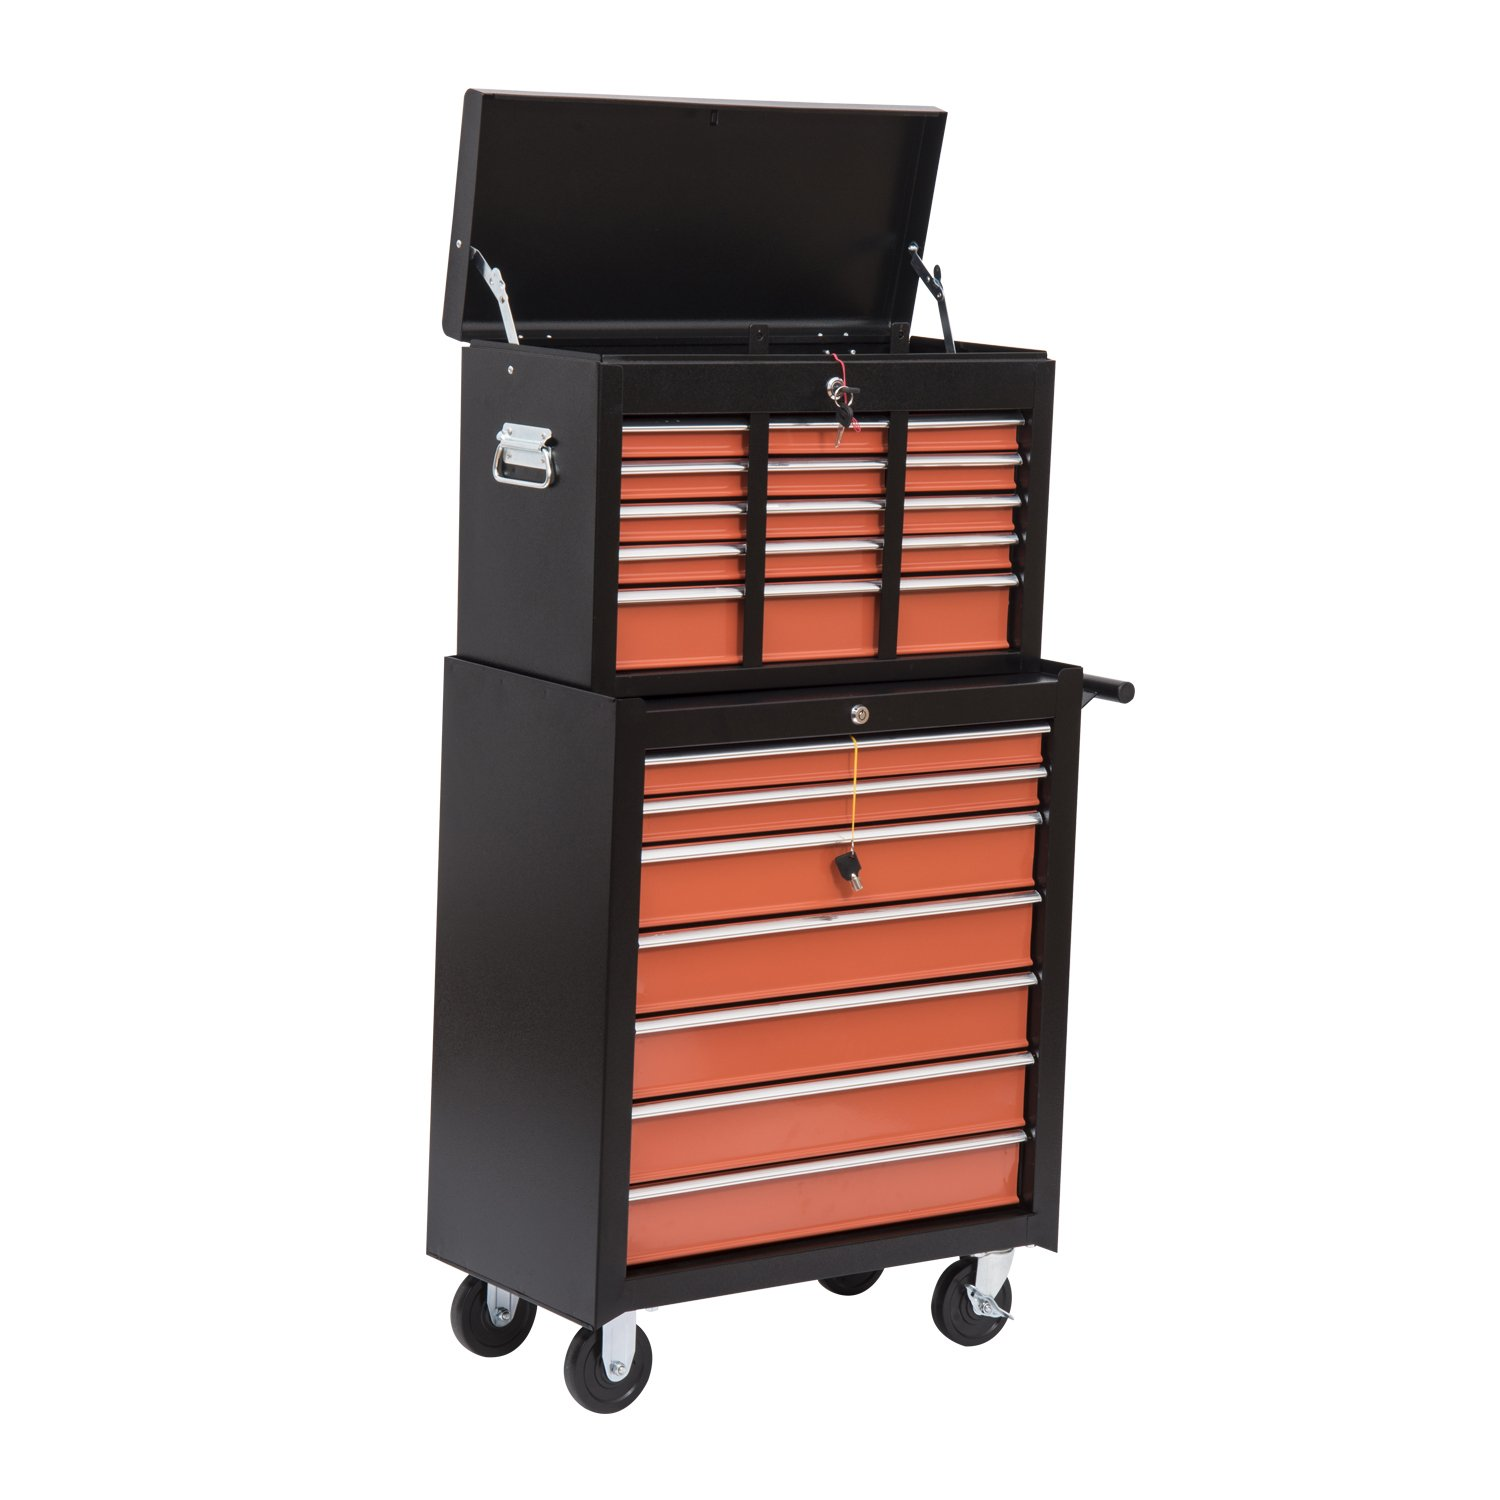 HomCom Rolling Garage Tool Chest Cabinet with 16 Drawers - Black and Orange